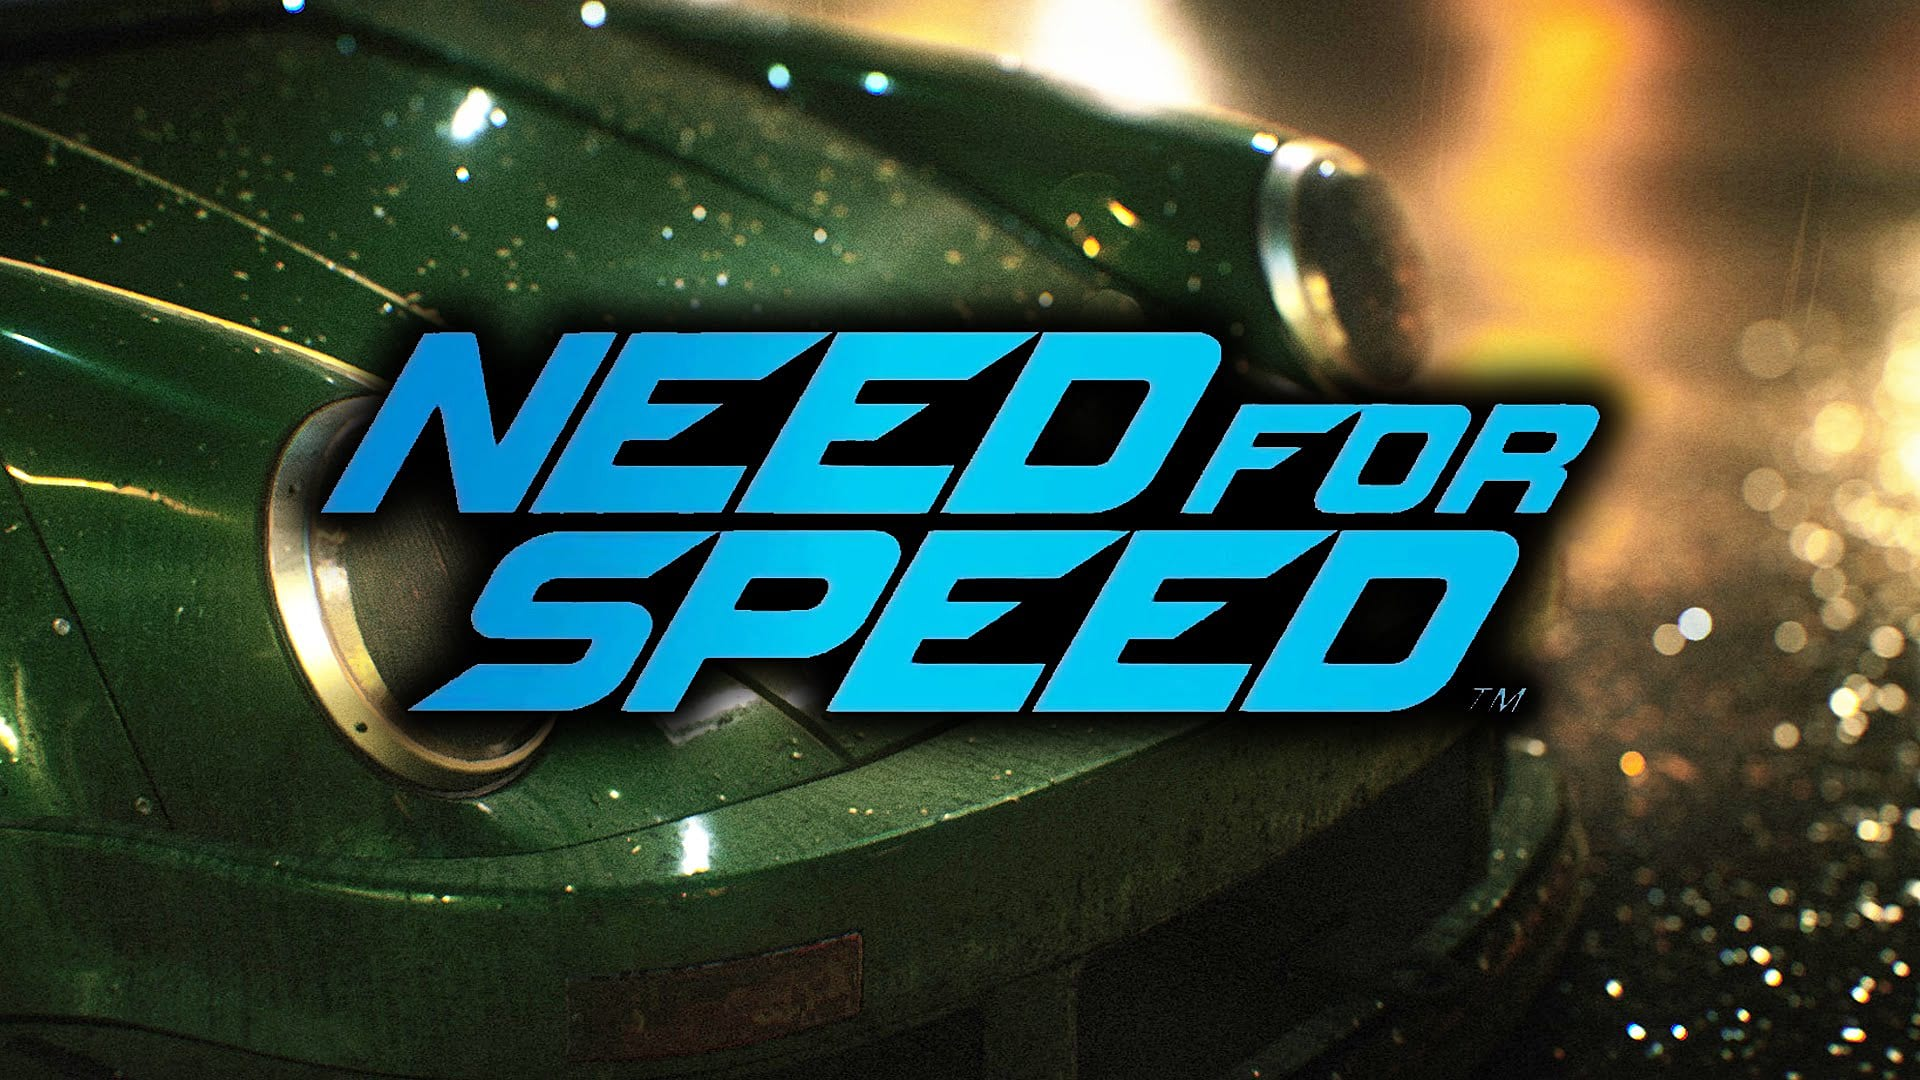 a review and proposal to improve the video game need for speed The game world presents its own issues but also holds up to scrutiny need for speed is set in a completely open world modeled primarily after los angeles, with four main boroughs and several more subsections ranging from hilly switchbacks to tangled highways to tight urban corridors it's populated with.